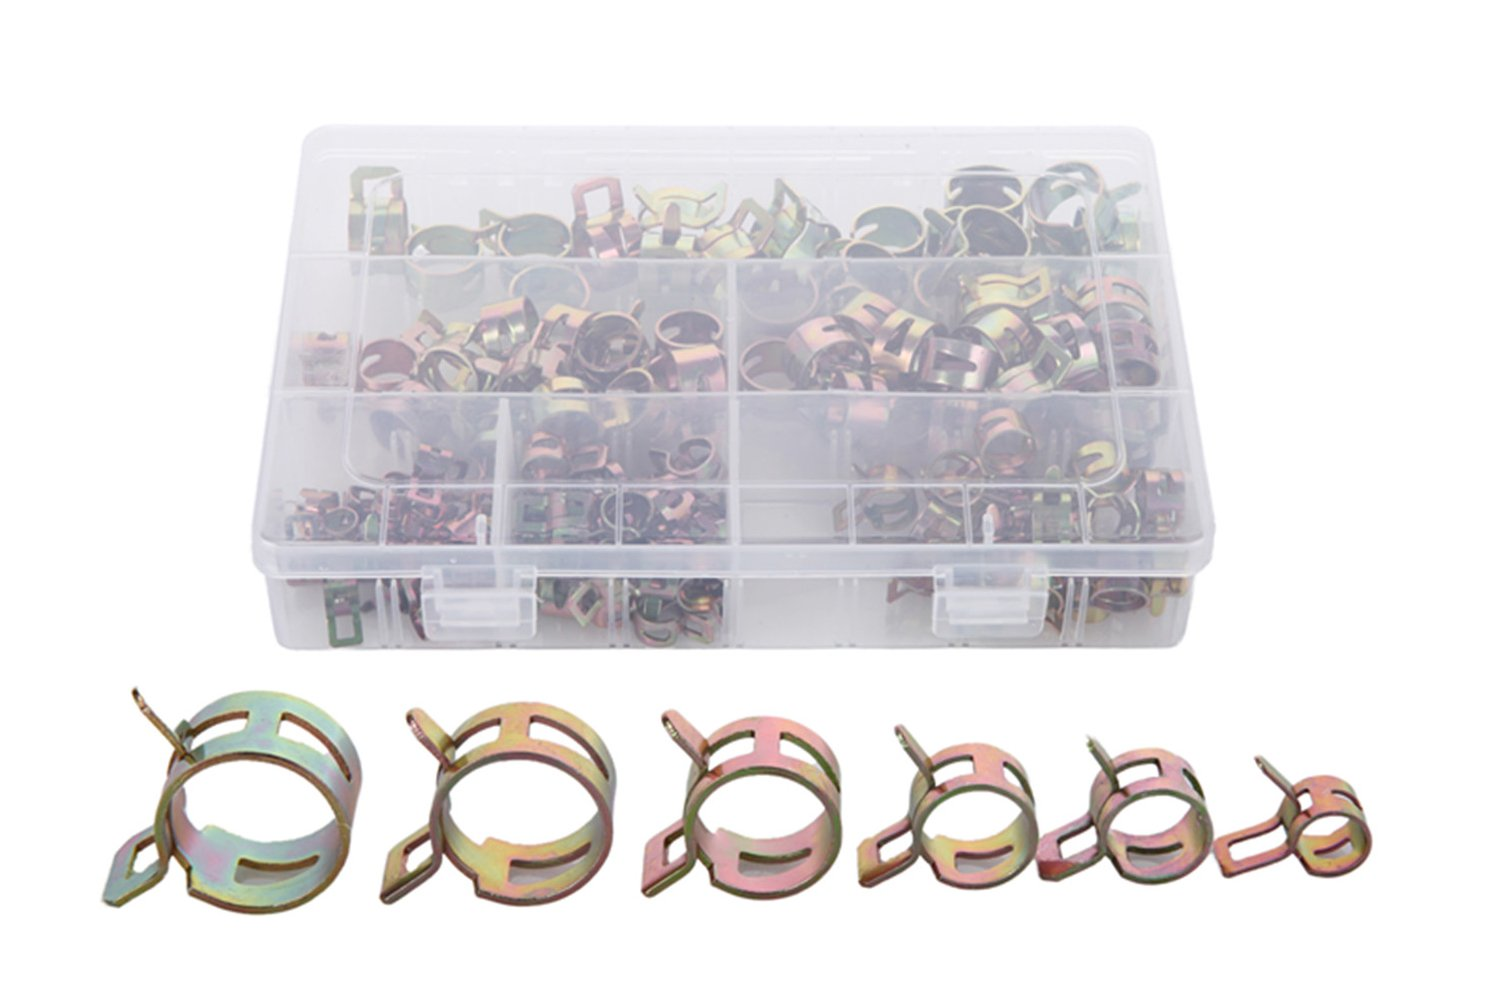 Eowpower 200Pcs 6/7/9/10/11/14/16/17mm Spring Clips Fuel Hose Line Water Pipe Air Tube Clamps Fasteners Assortment Kit